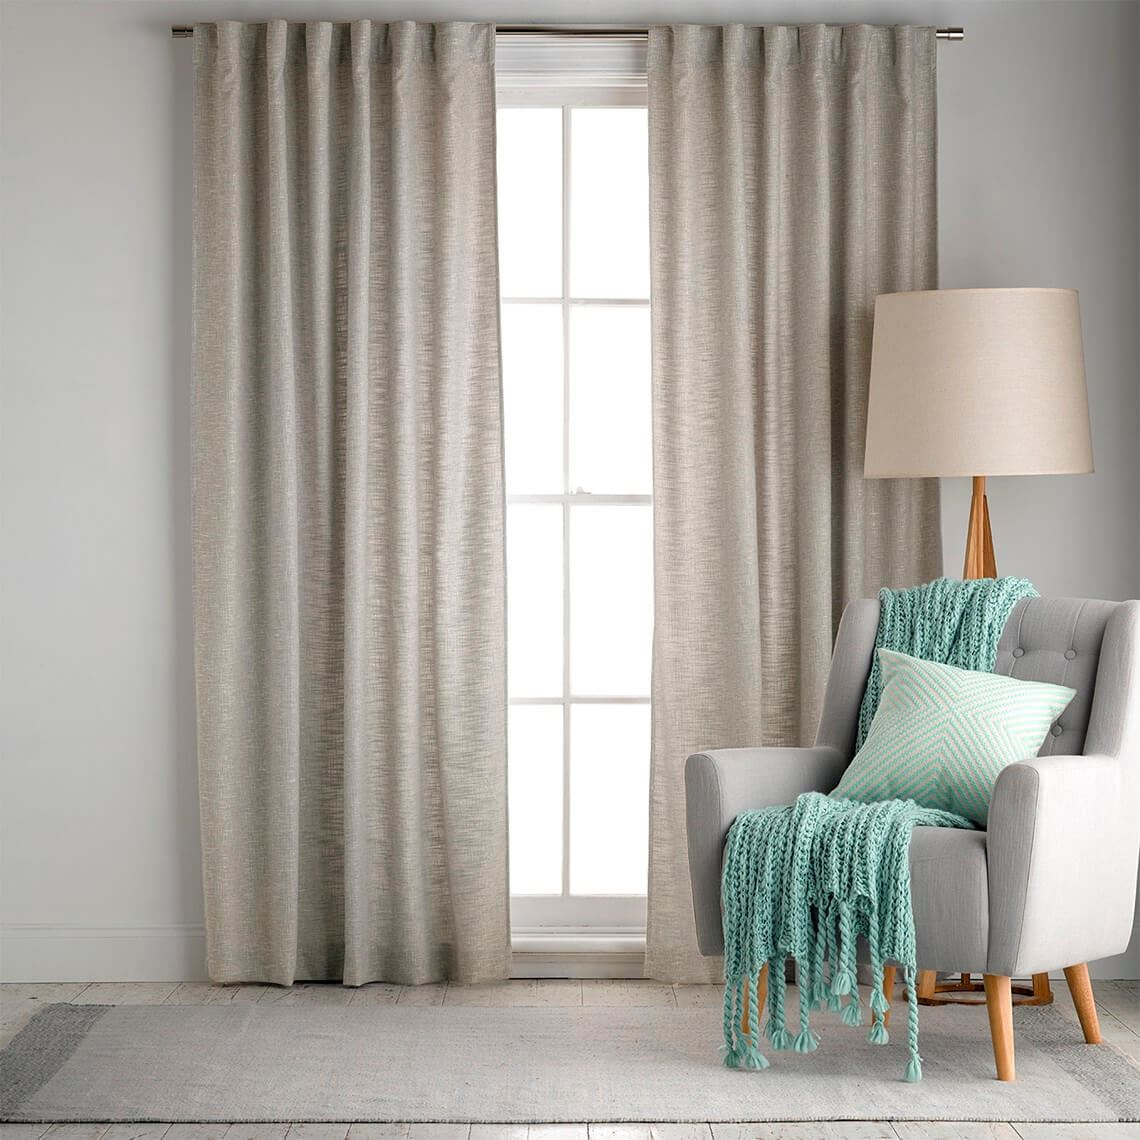 Clarence Lightfilter Concealed Tab Top Curtain Size W 180cm x D 1cm x H 250cm in Lichen 100% Polyester Fabric Freedom by Freedom, a Curtains for sale on Style Sourcebook